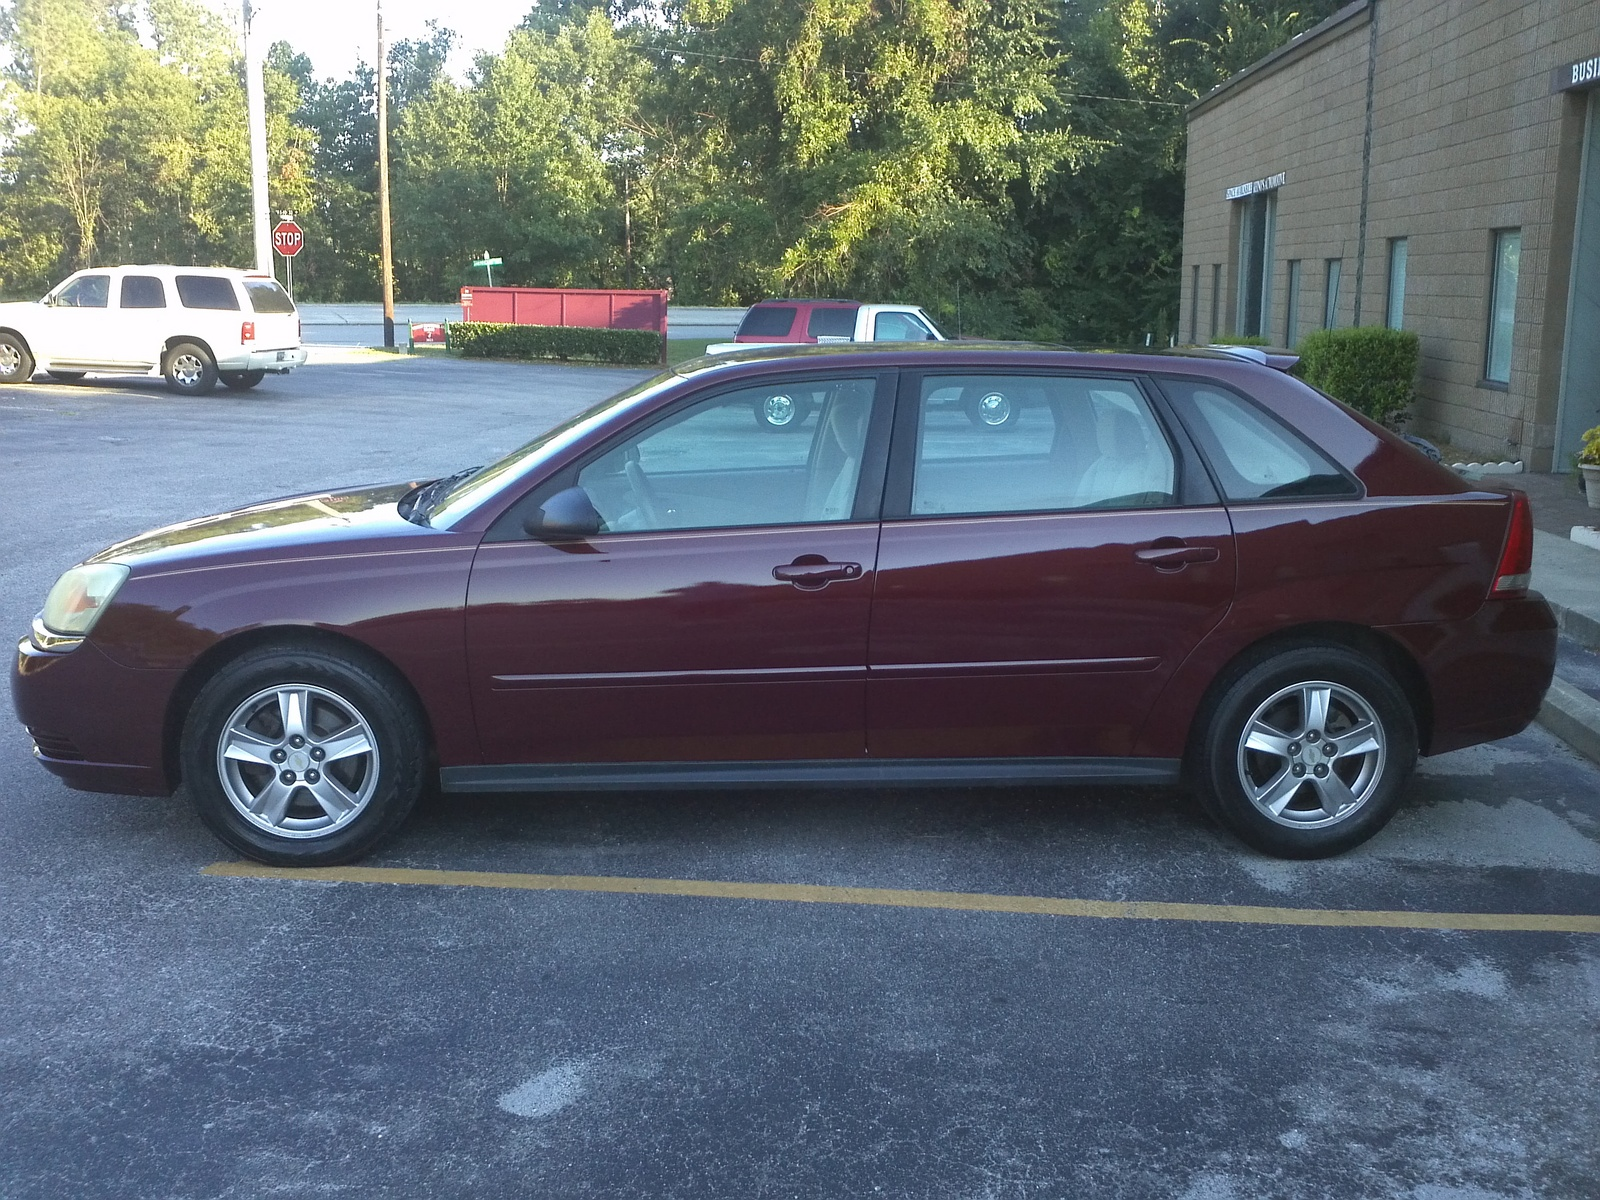 2005 chevrolet malibu maxx exterior pictures cargurus. Cars Review. Best American Auto & Cars Review